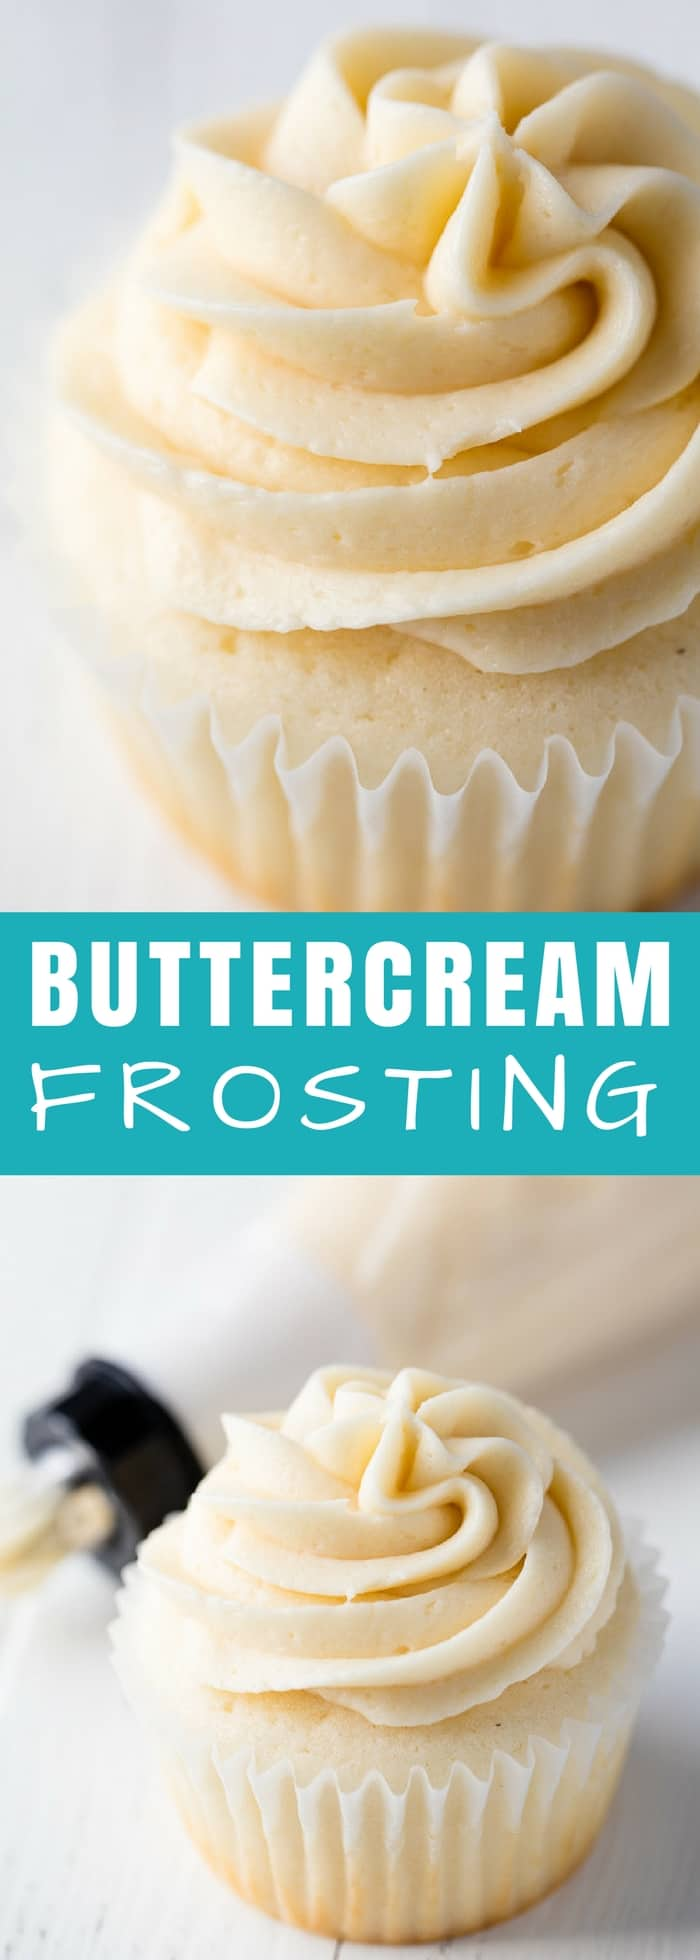 Buttercream Frosting is a classic option for cakes and cupcakes. This buttercream frosting recipe is perfection every single time.